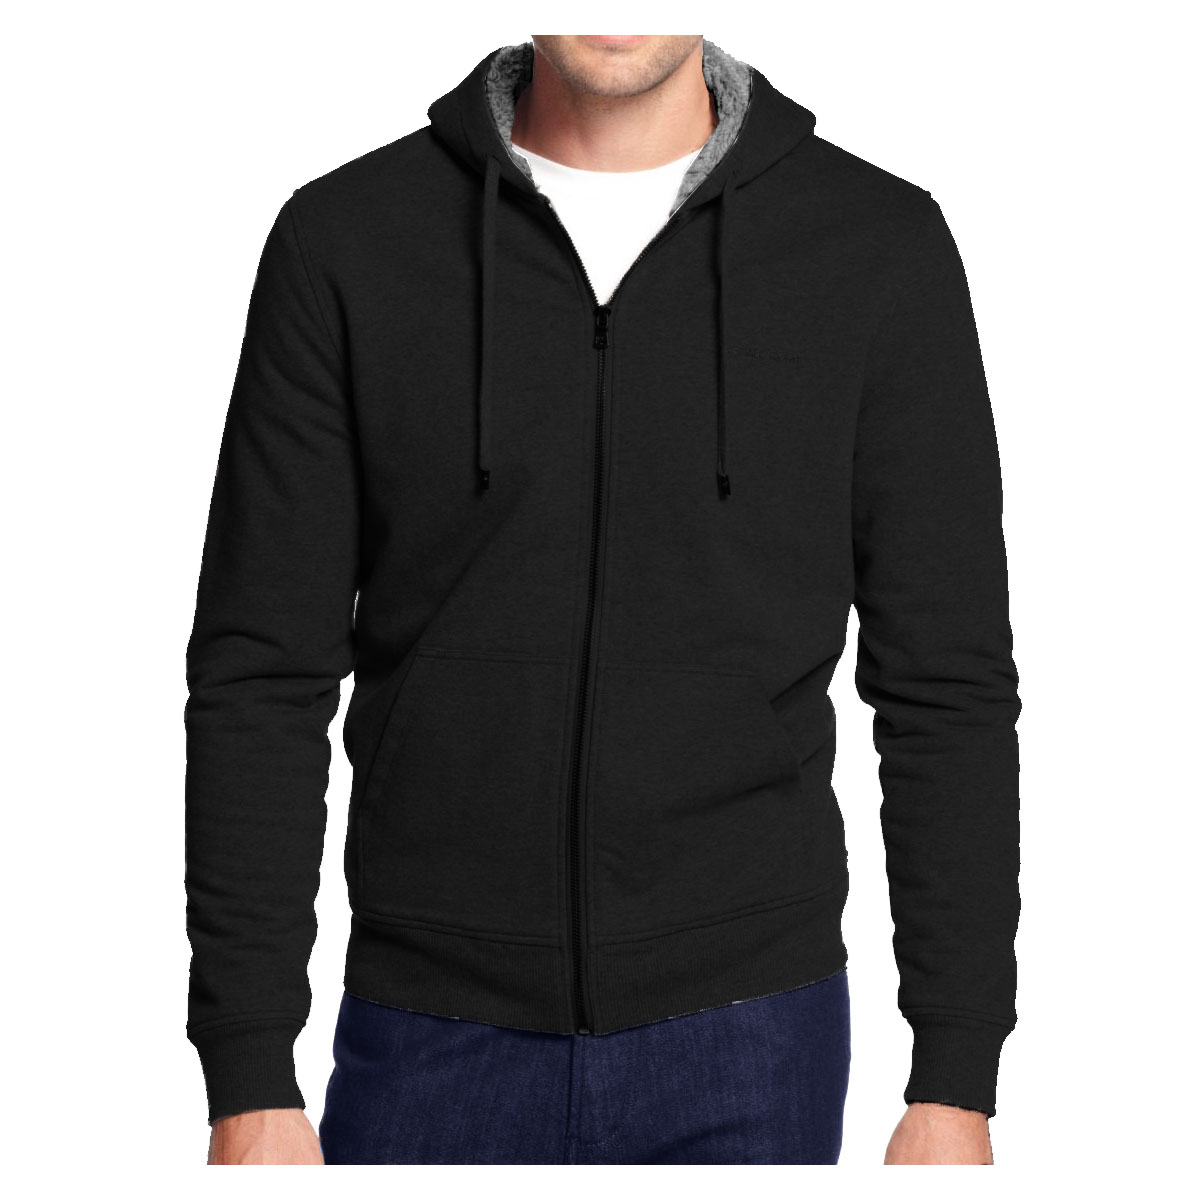 Men's Hoodie Zip Up Jacket Sherpa Lined with Quilted Sleeves ...